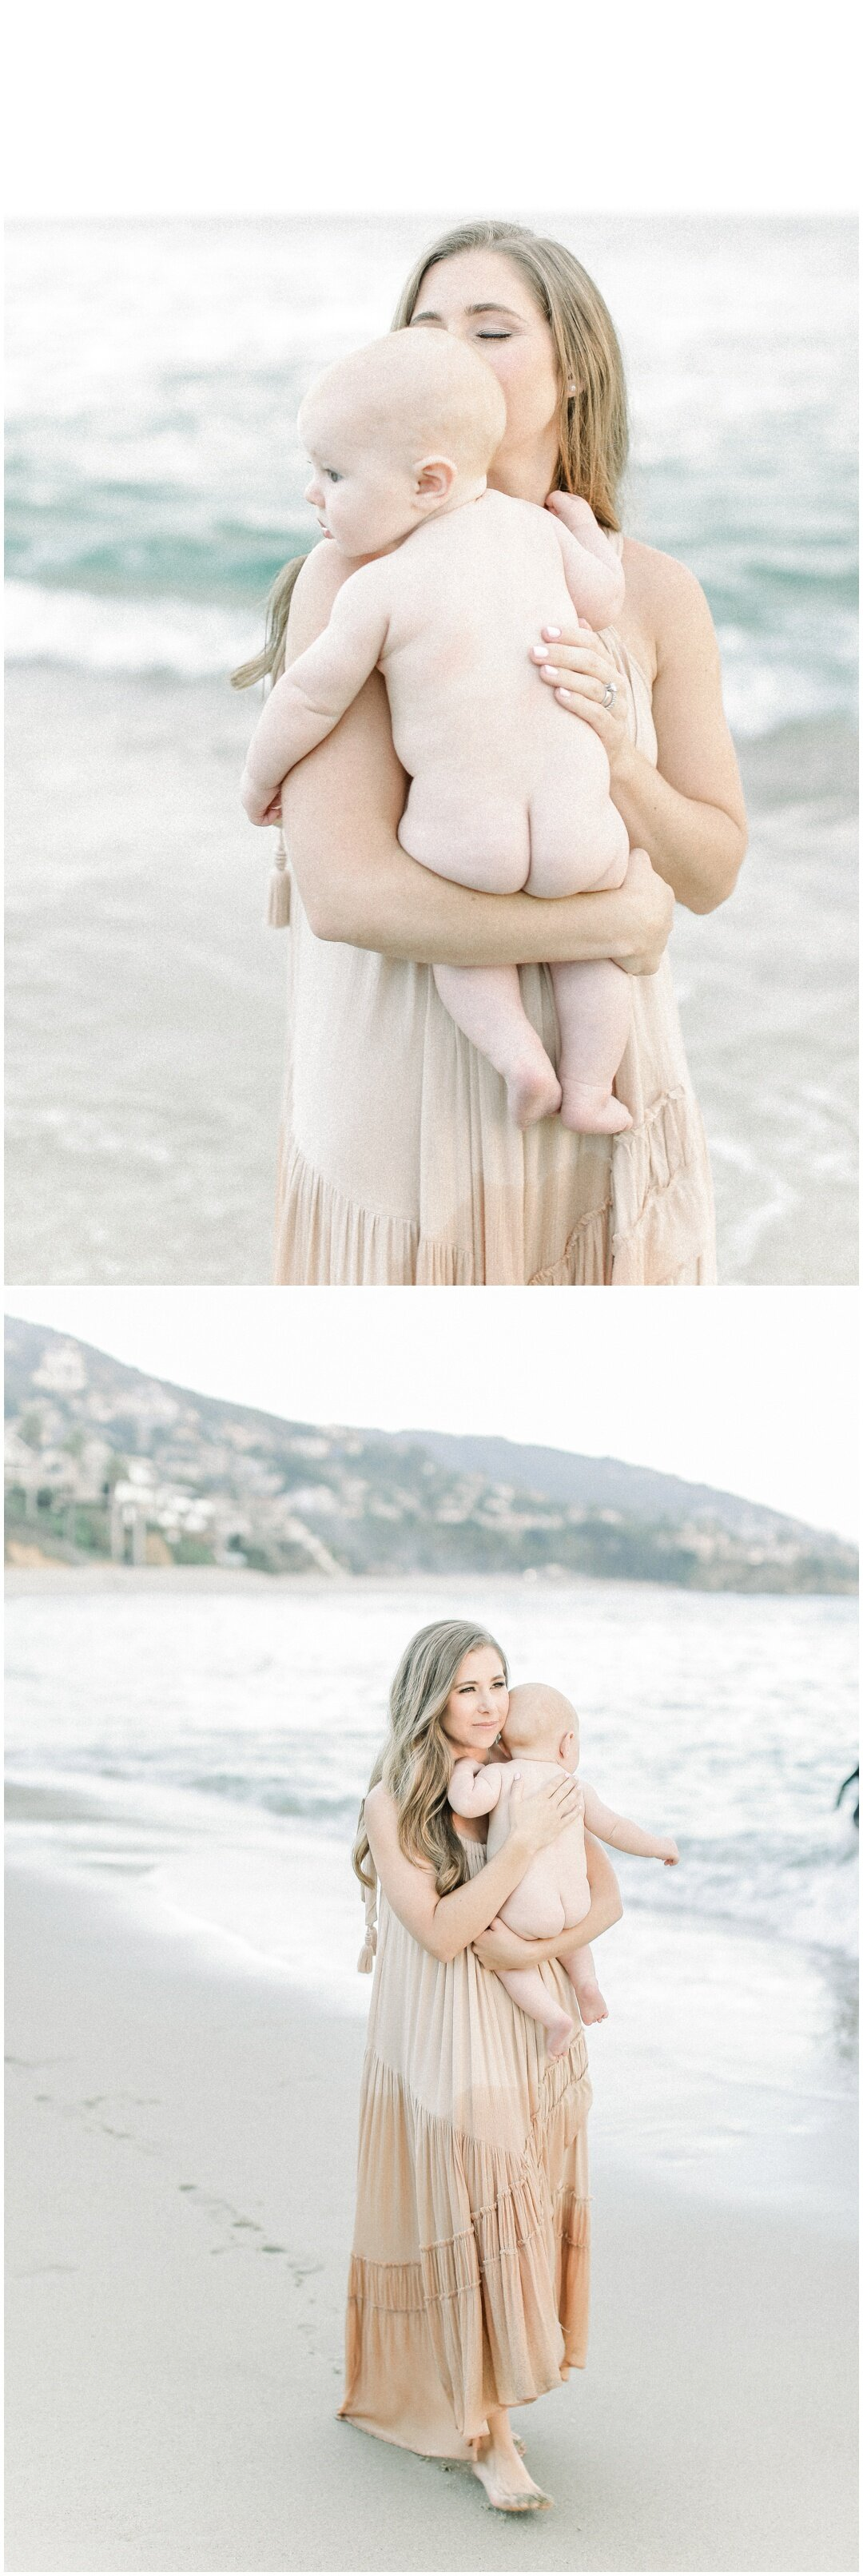 Newport+Beach+Newborn+Maternity+Photographer+Orange+County+Family+Photographer+Cori+Kleckner+Photography+Forgatch+Family+Matt+Kelley+Jack+Forgatch+_4427.jpg